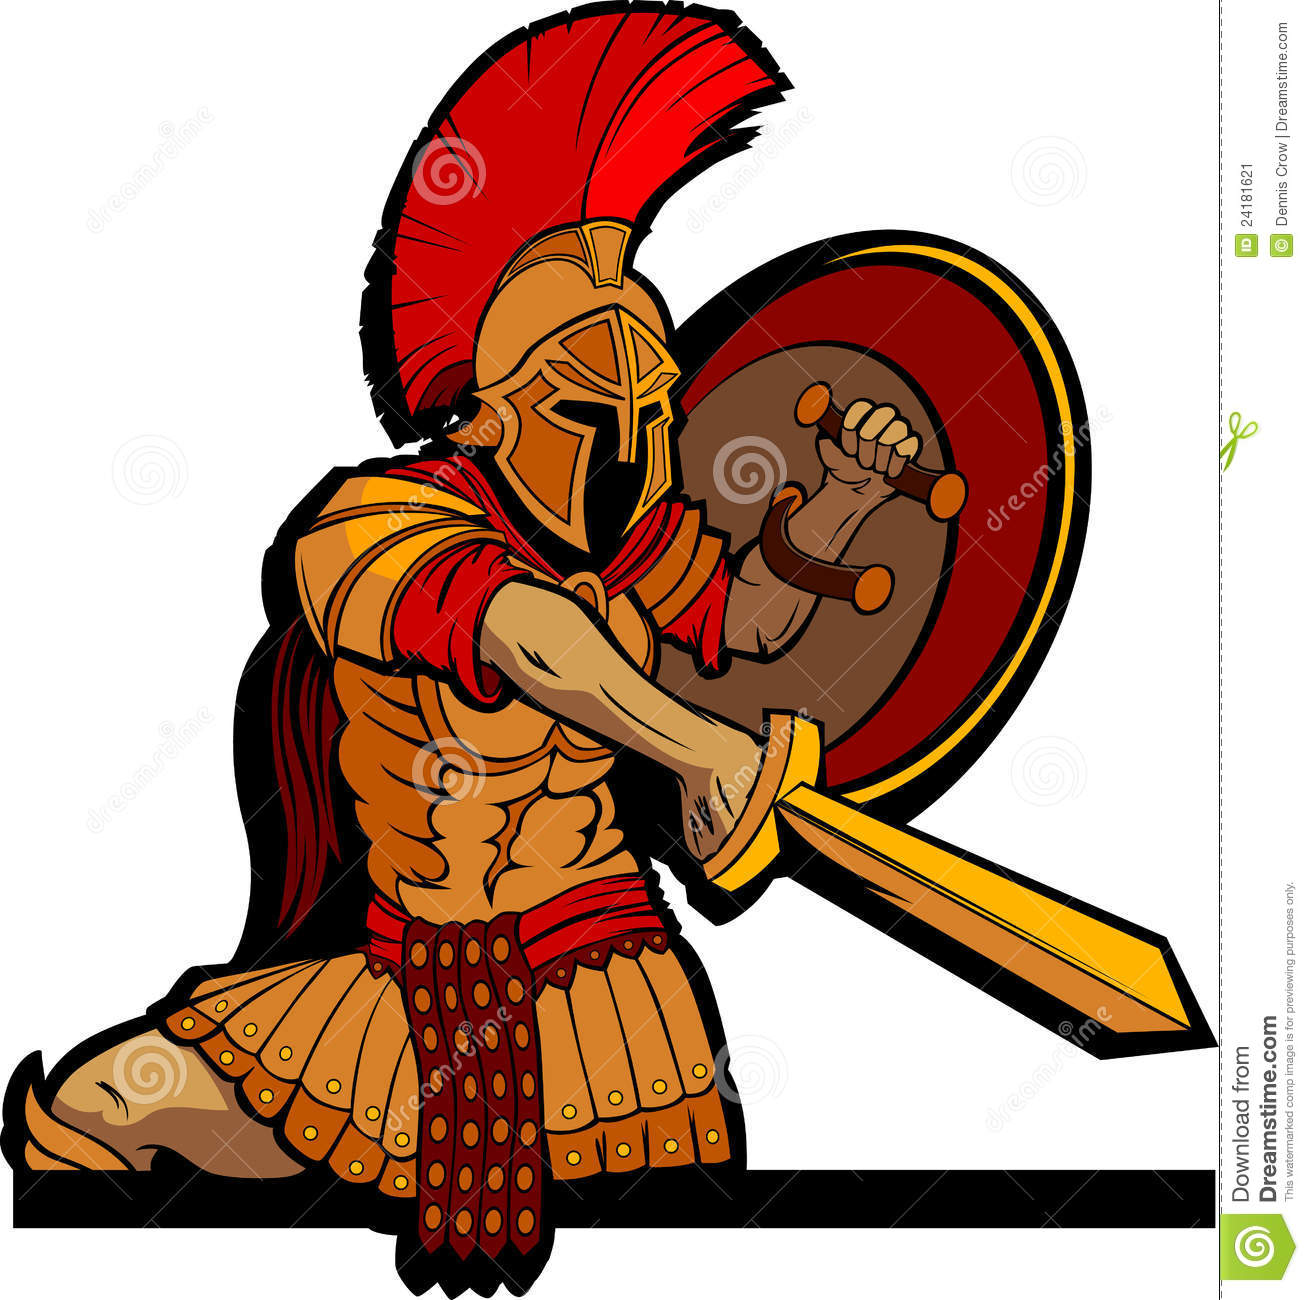 Spartan Mascot With Sword And Shield Stock Vector - Illustration of